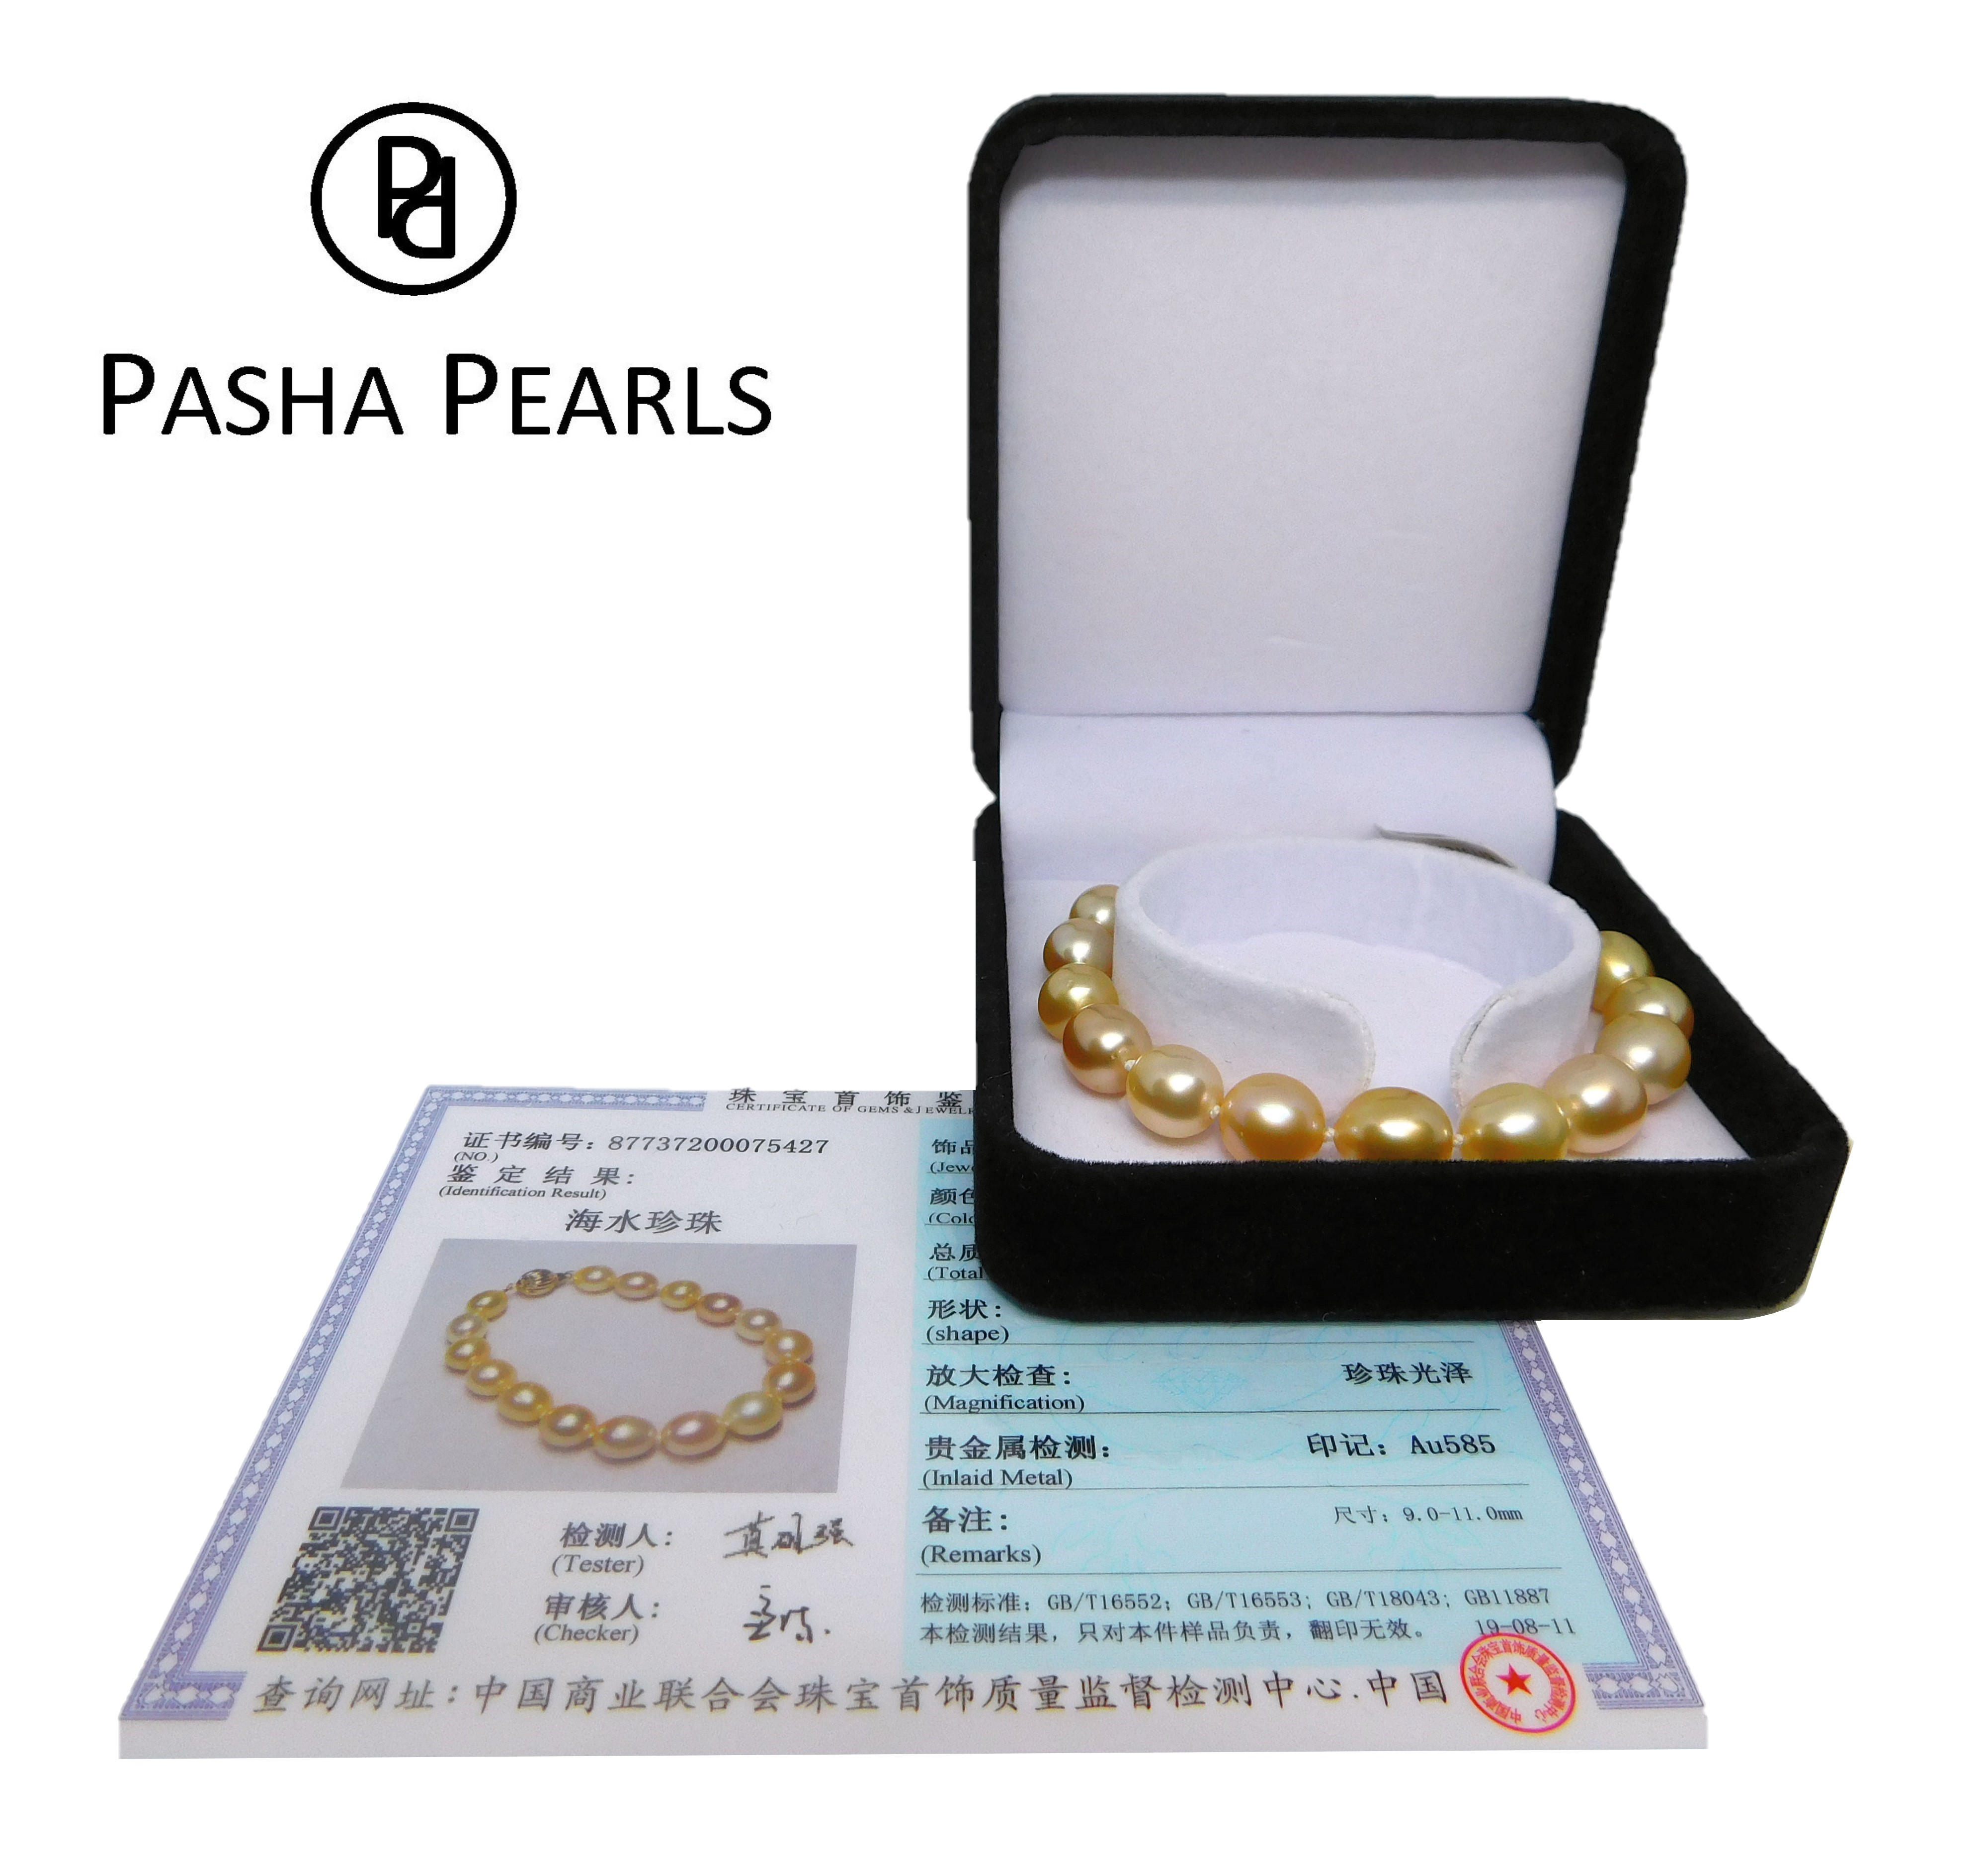 This elegant bracelet features 10.0-11.0mm Gold South Sea pearls, handpicked for their luminous luster